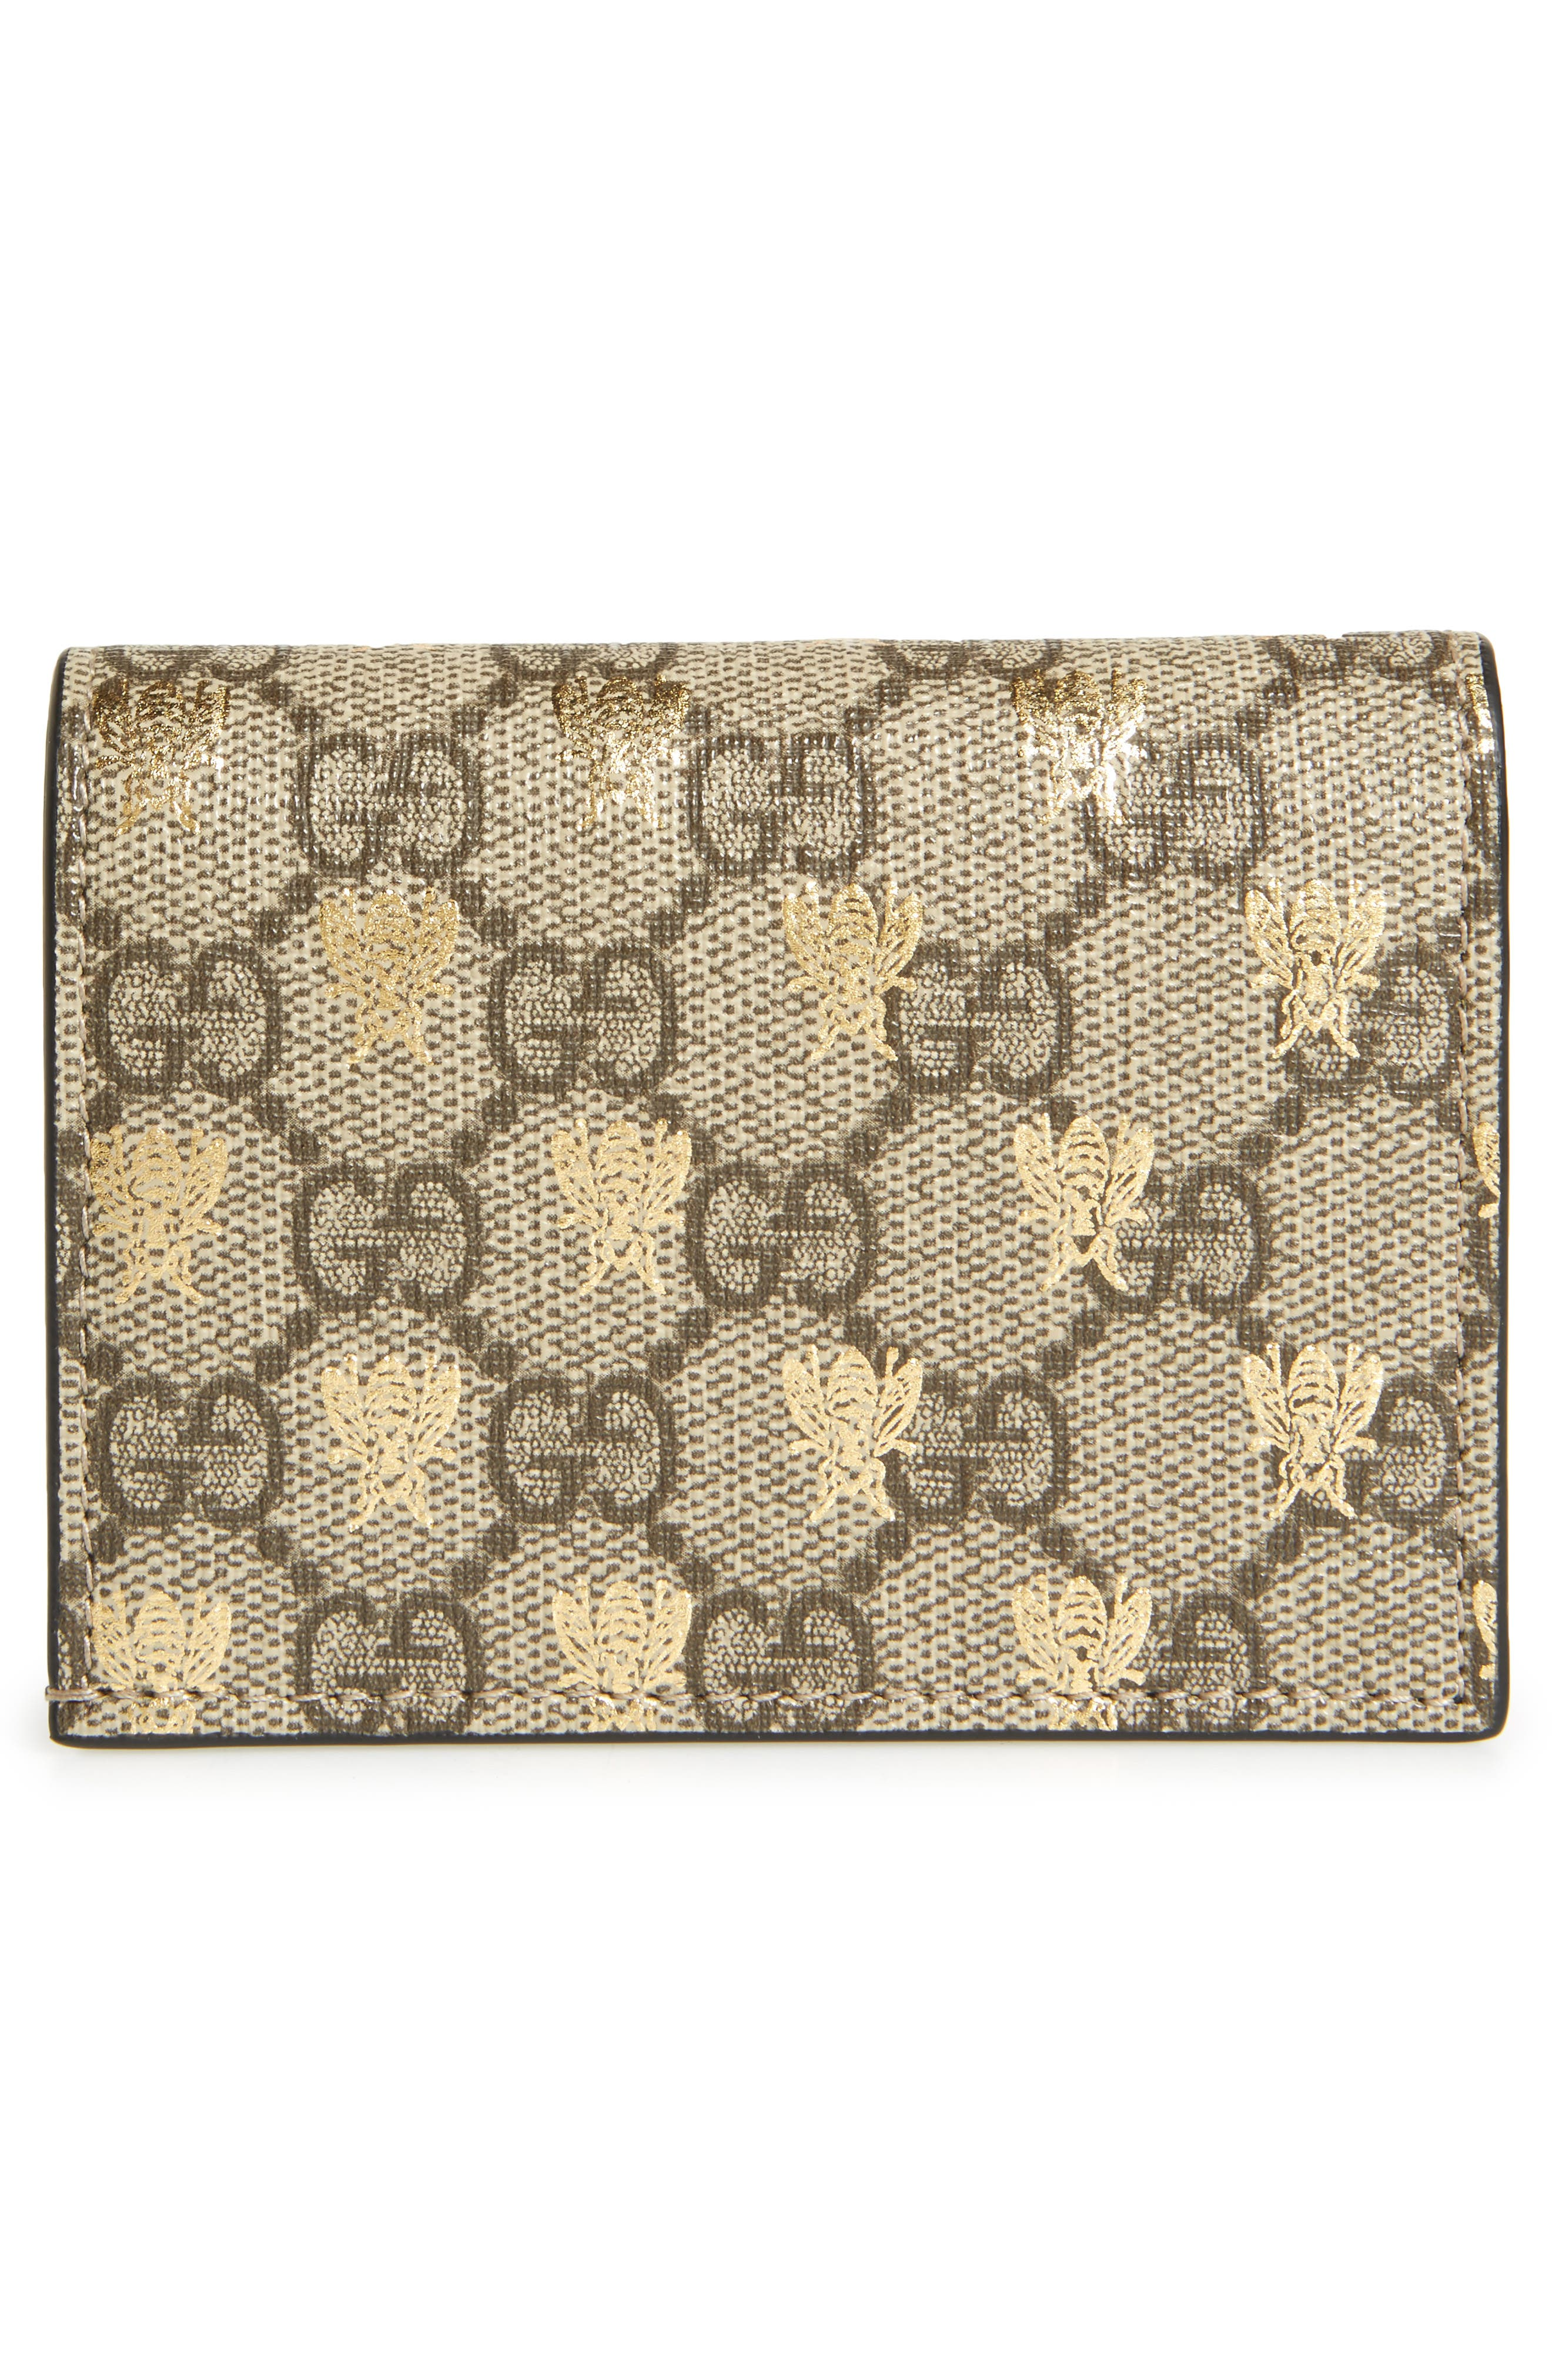 GG Supreme Bee Canvas Bifold Wallet,                             Alternate thumbnail 3, color,